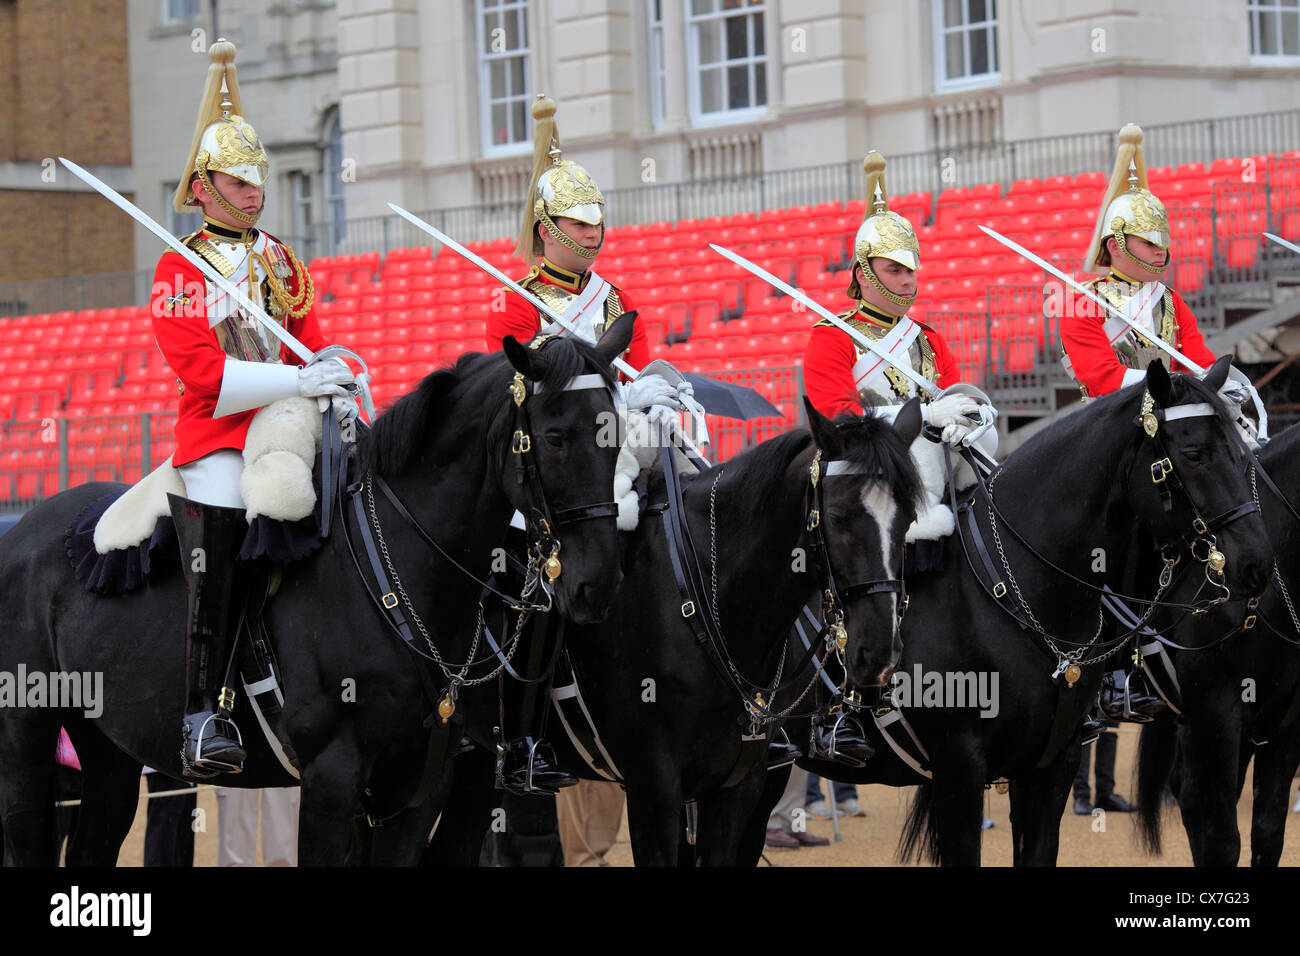 Household Cavalry, changing the guard at Horse guards parade, London, UK Stock Photo